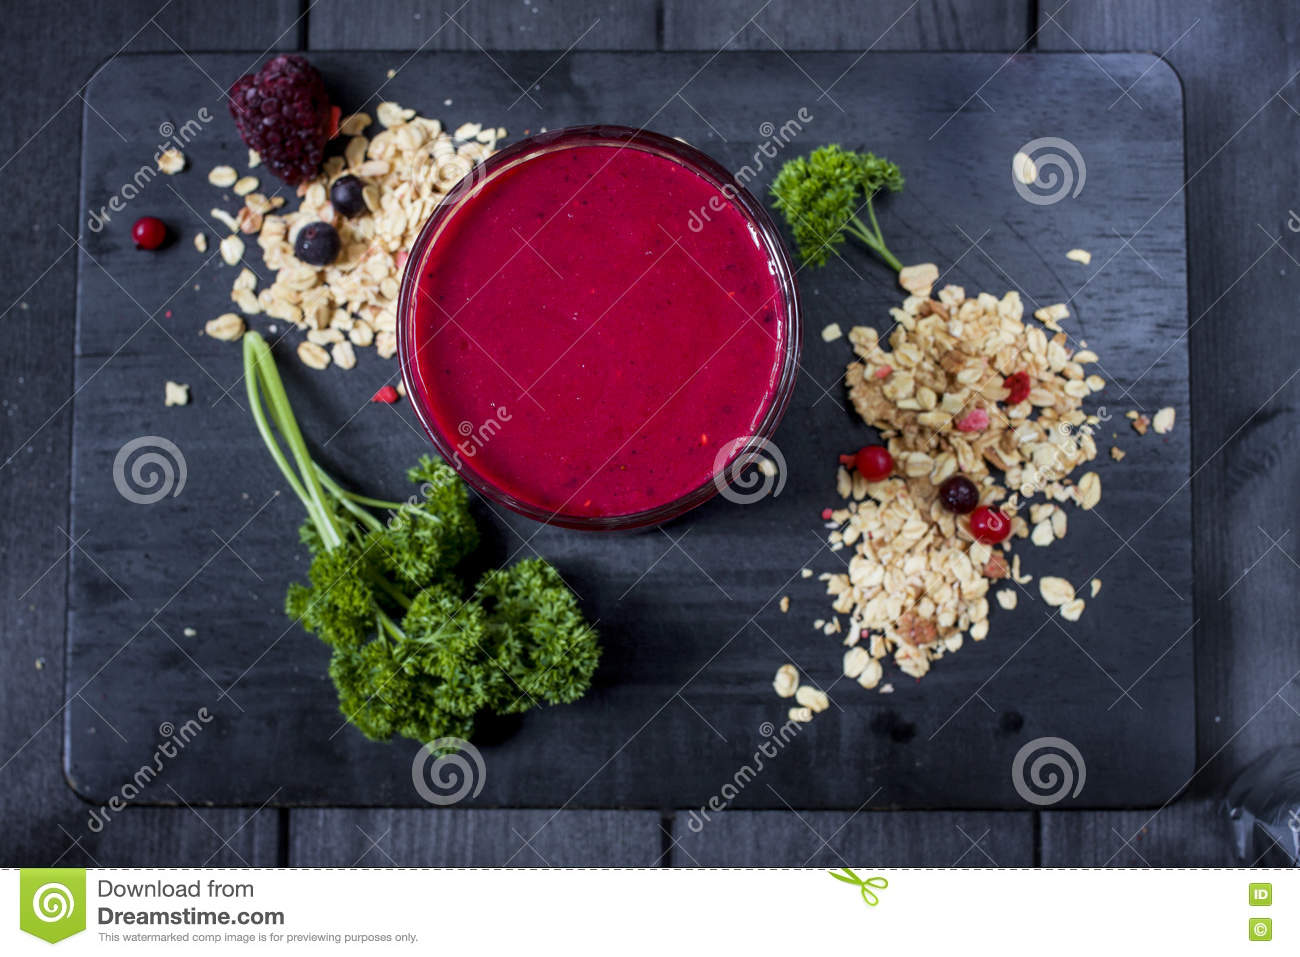 Freshly blended berry smoothie in a glass and granola on dark rustic wooden background. Selective focus, copy space